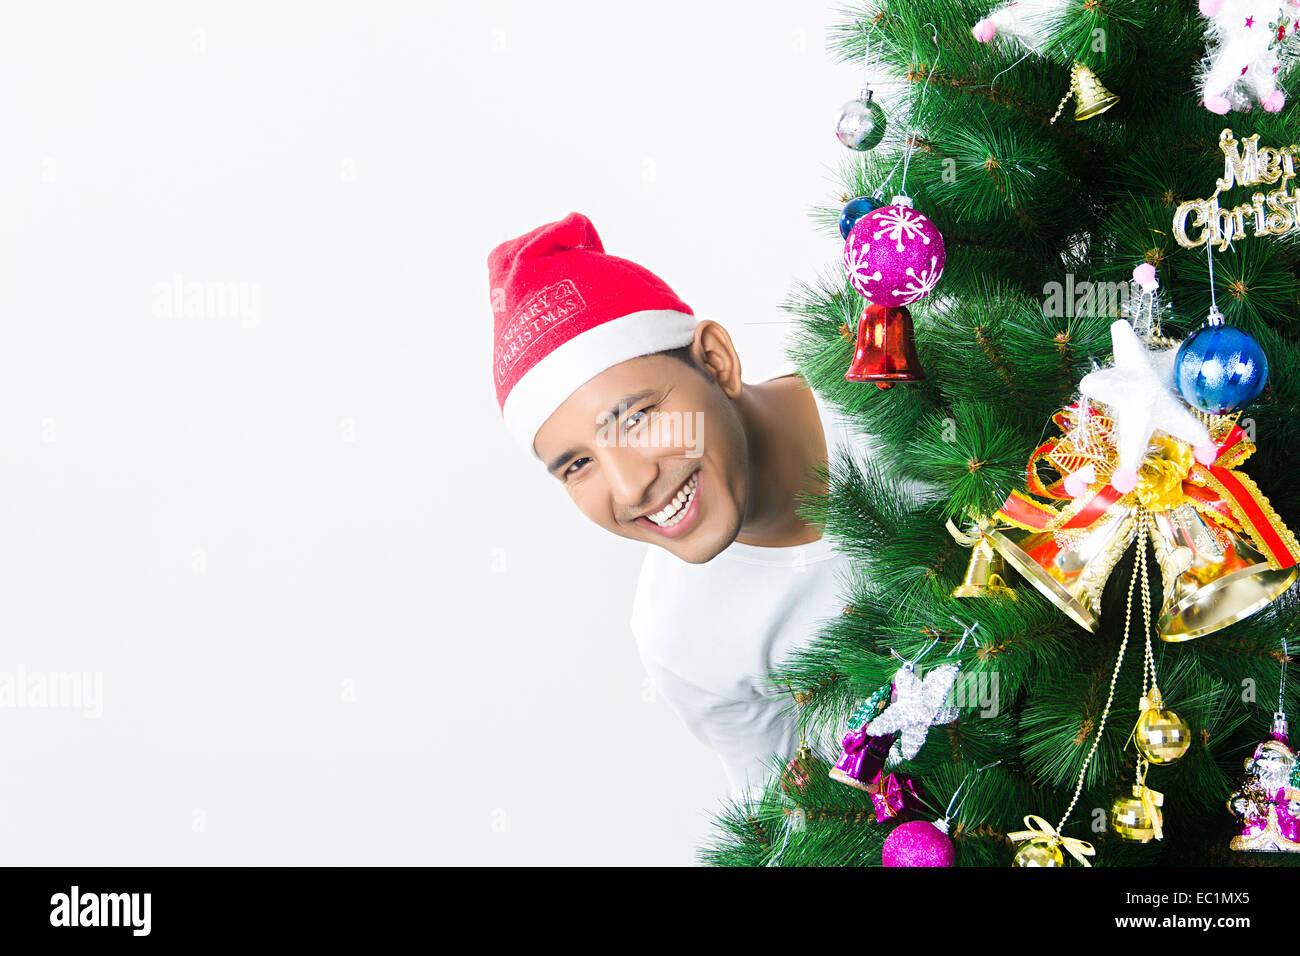 one indian man Christmas Festival enjoy Stock Photo: 76255709 - Alamy